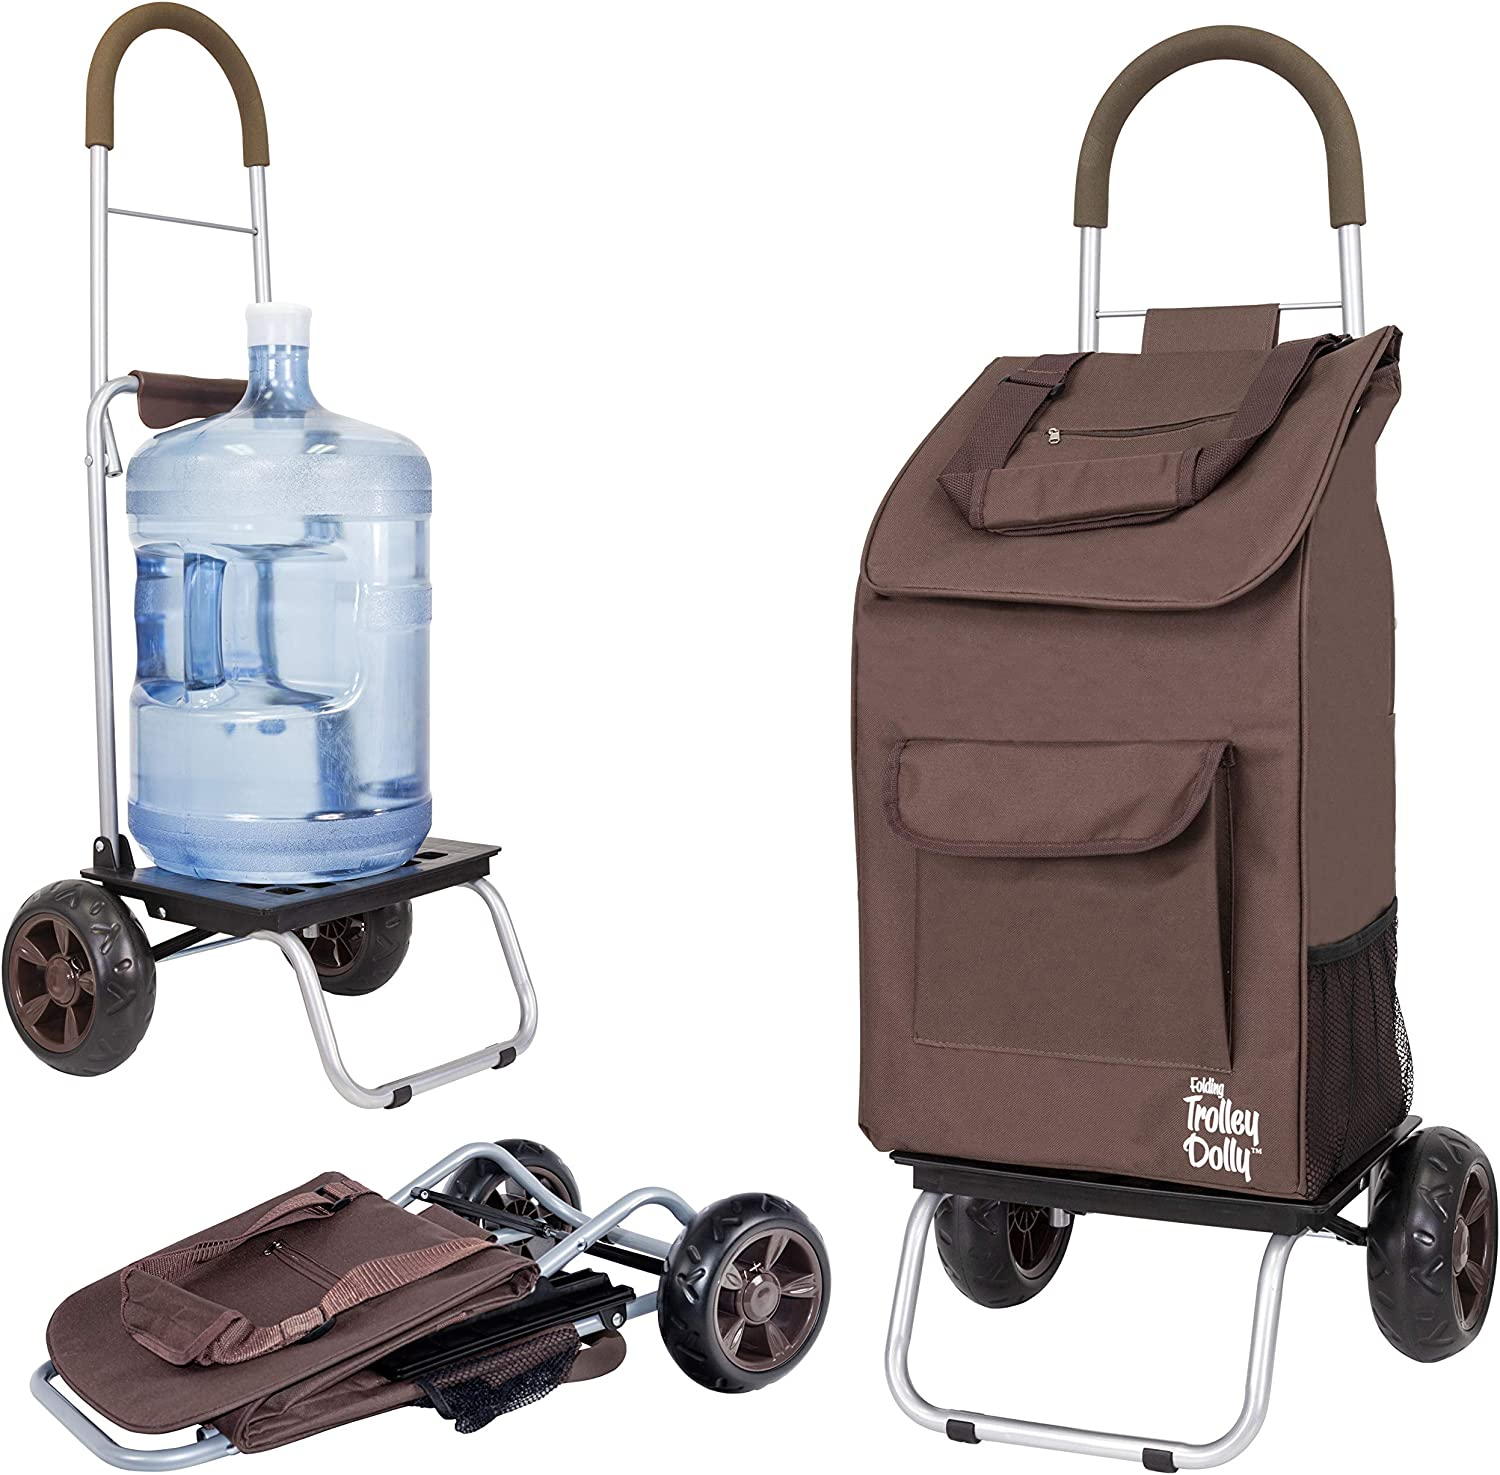 dbest products Trolley Dolly, Brown Shopping Grocery Foldable Cart